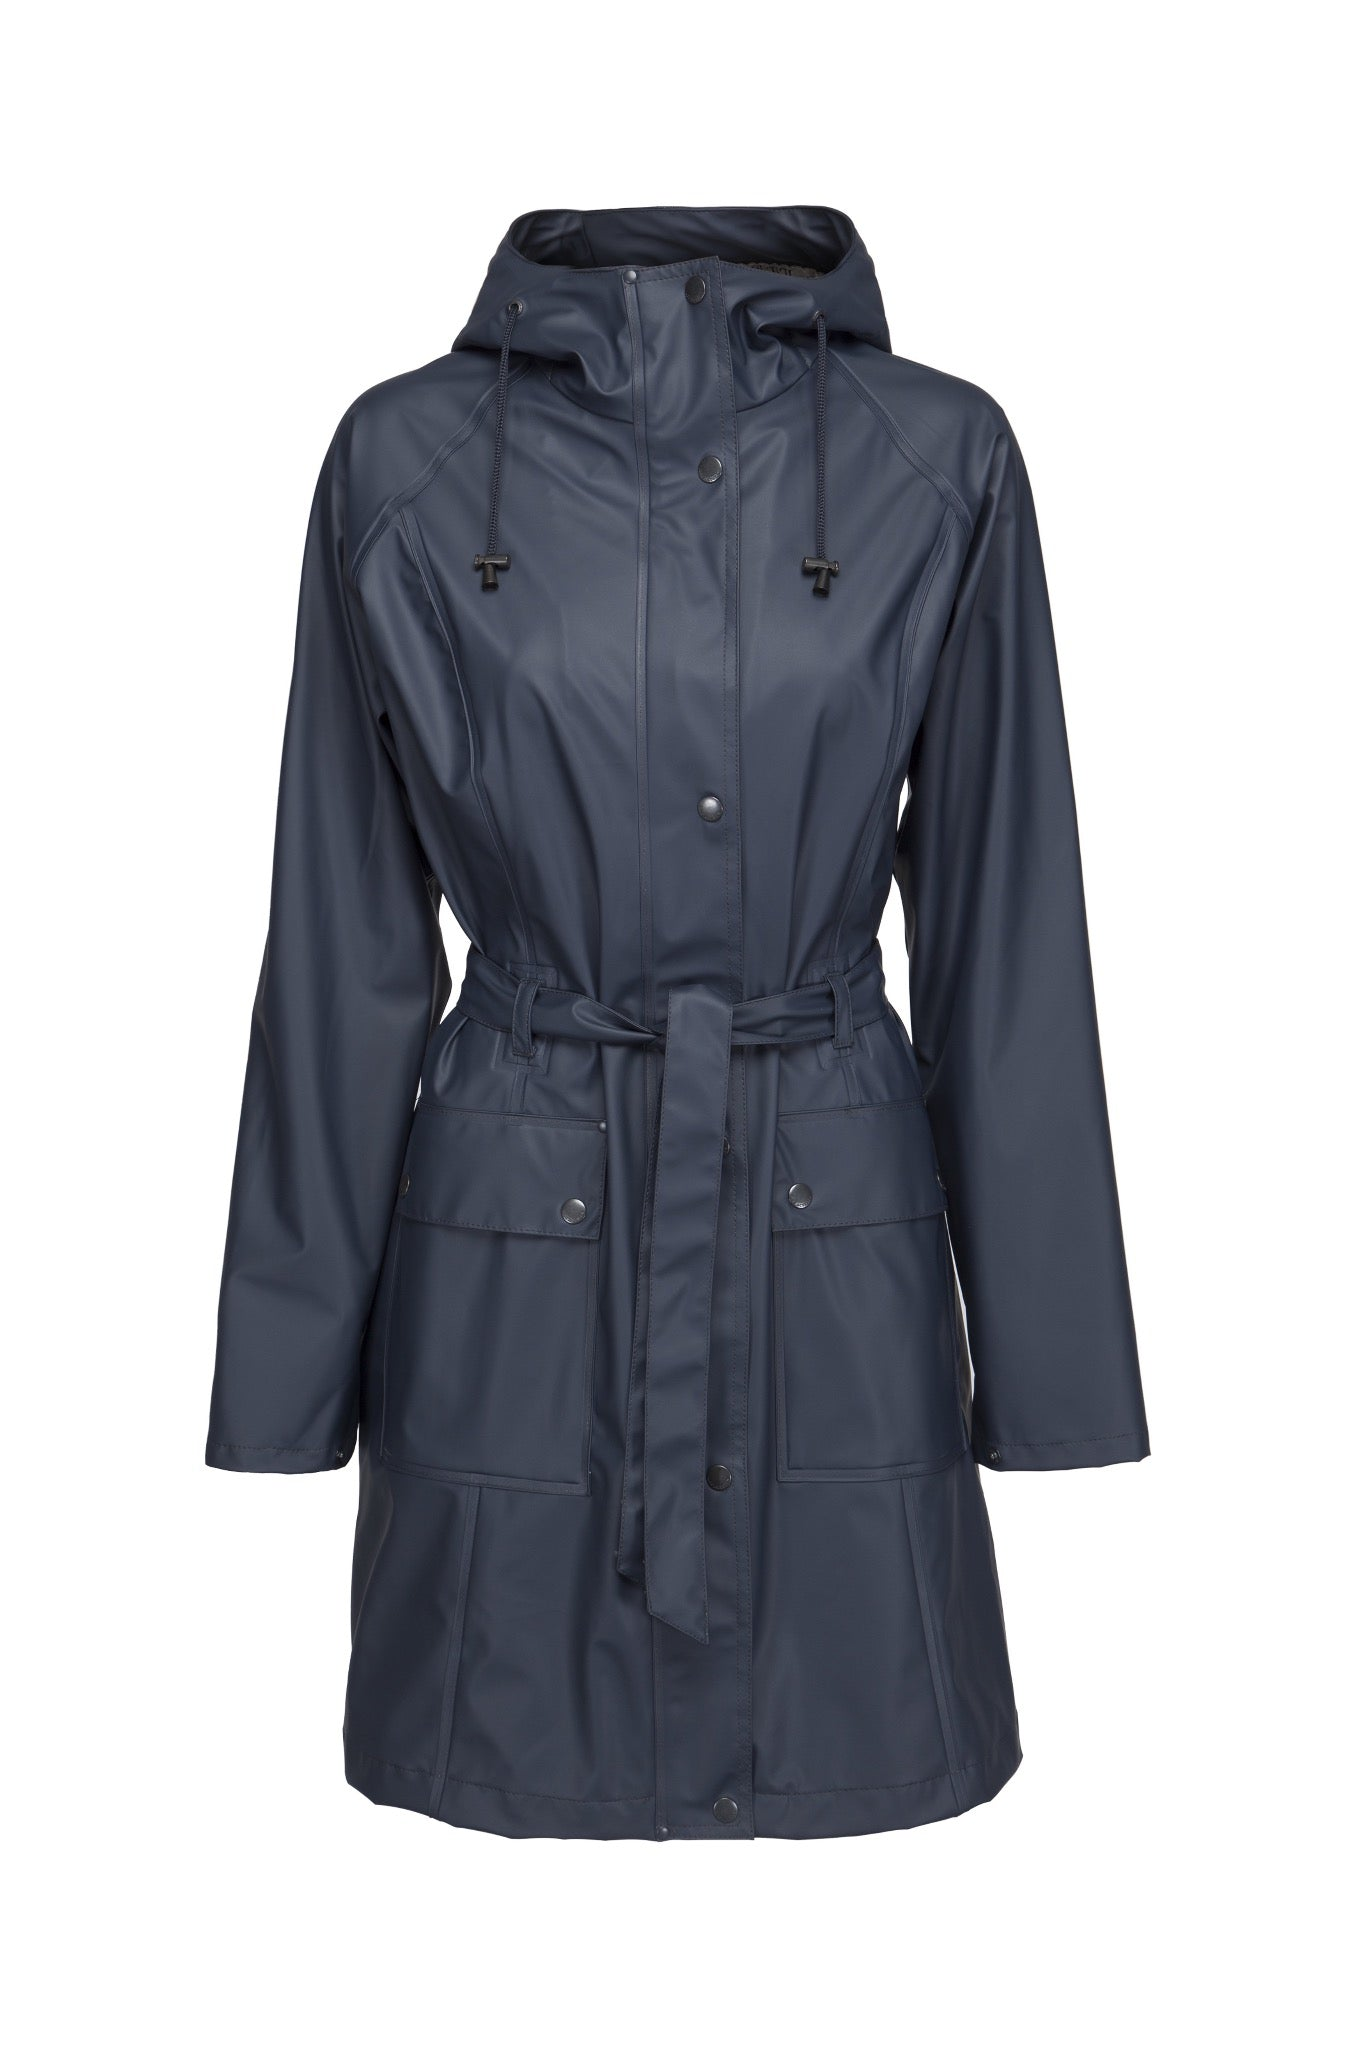 Ilse Jacobsen Rain70 Rain 70 rain coat, trench style with belt, patch pockets and functional hood. Indian ink - dark navy.